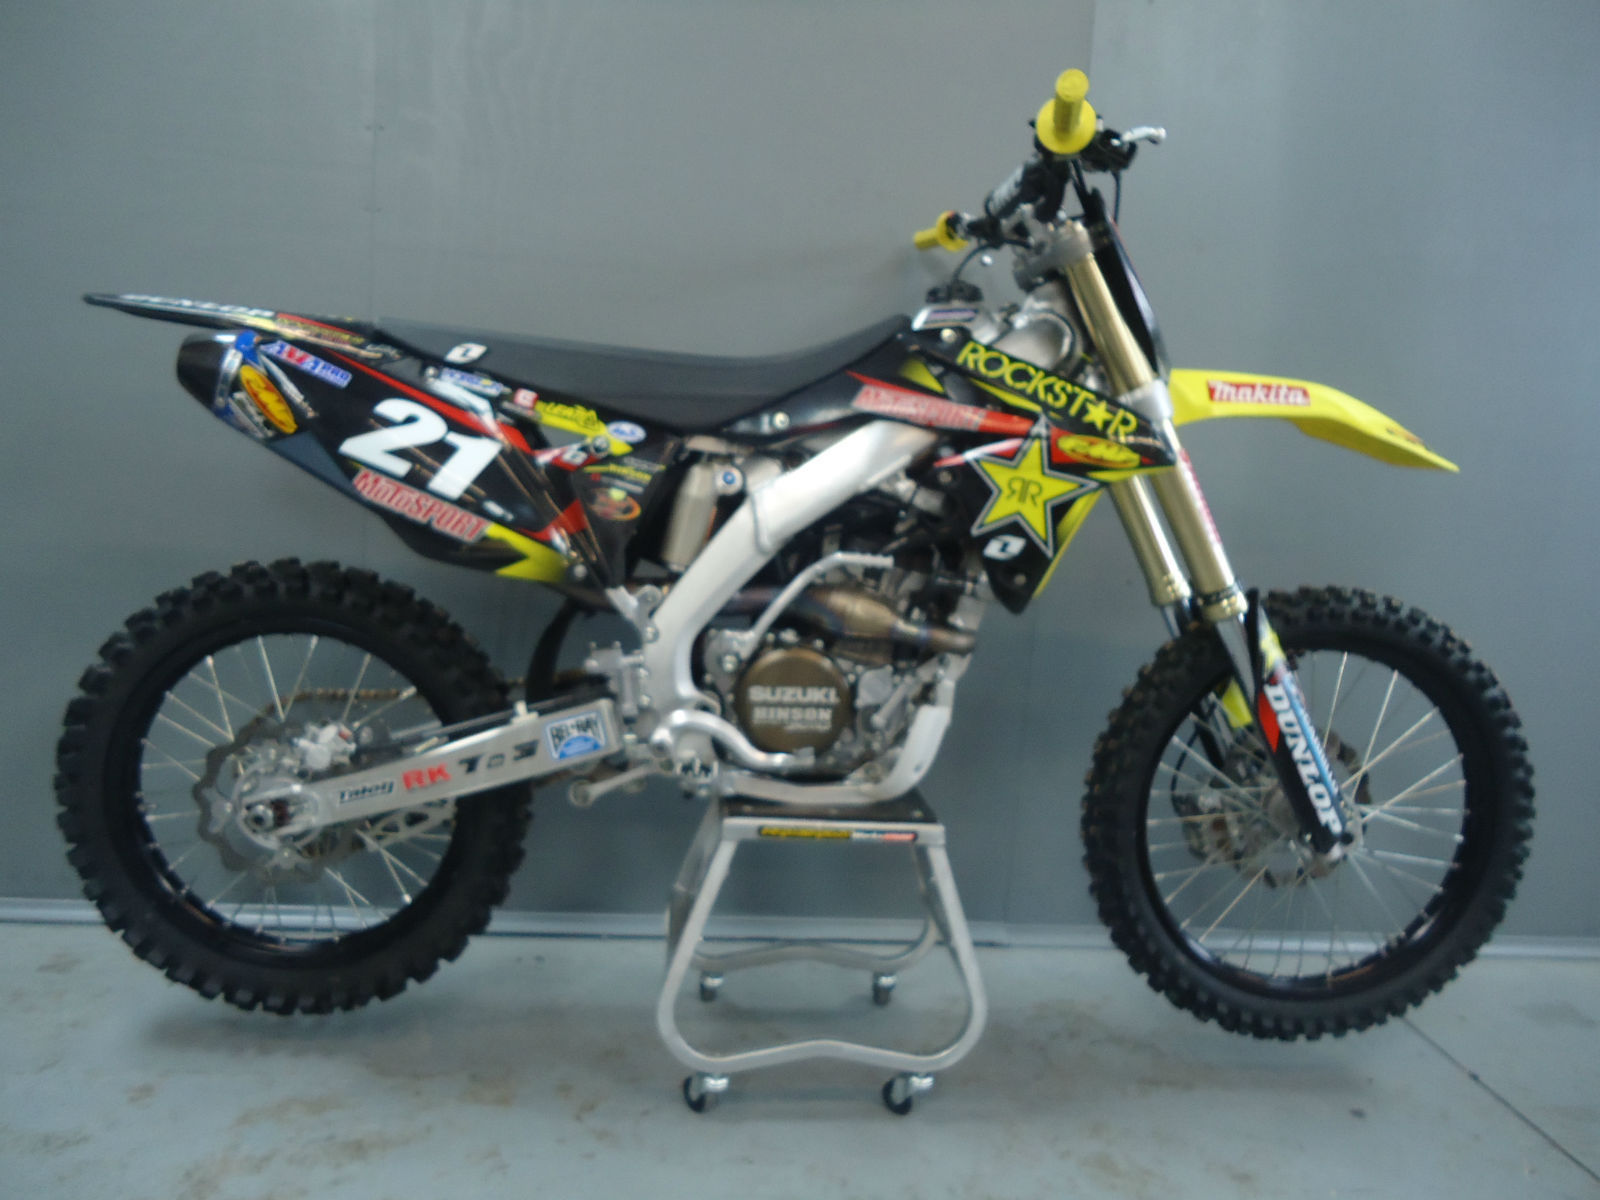 suzuki rmz 250 2013 michael ex jason anderson rockstar. Black Bedroom Furniture Sets. Home Design Ideas